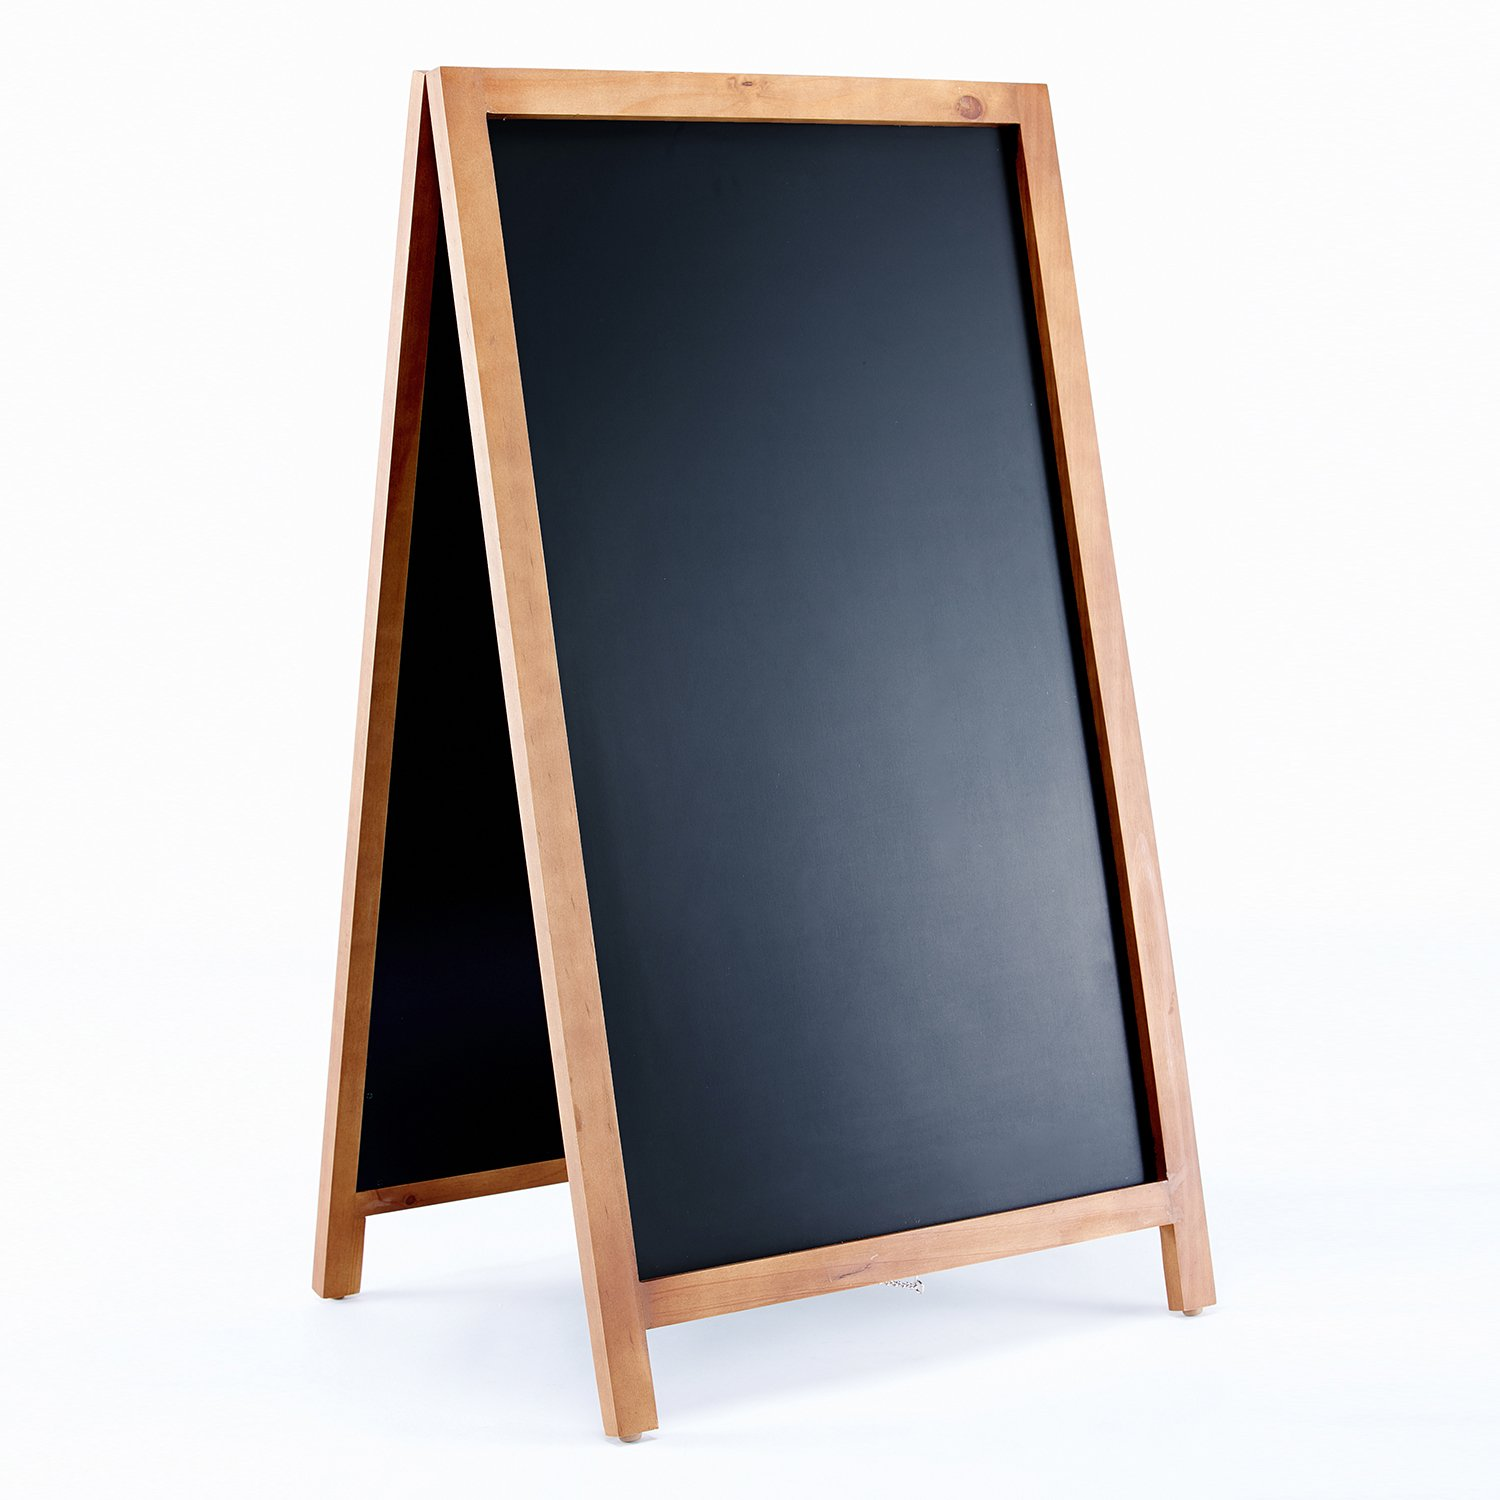 Amazon.com : Vintage Wooden Magnetic A Frame Chalkboard Sign for ...